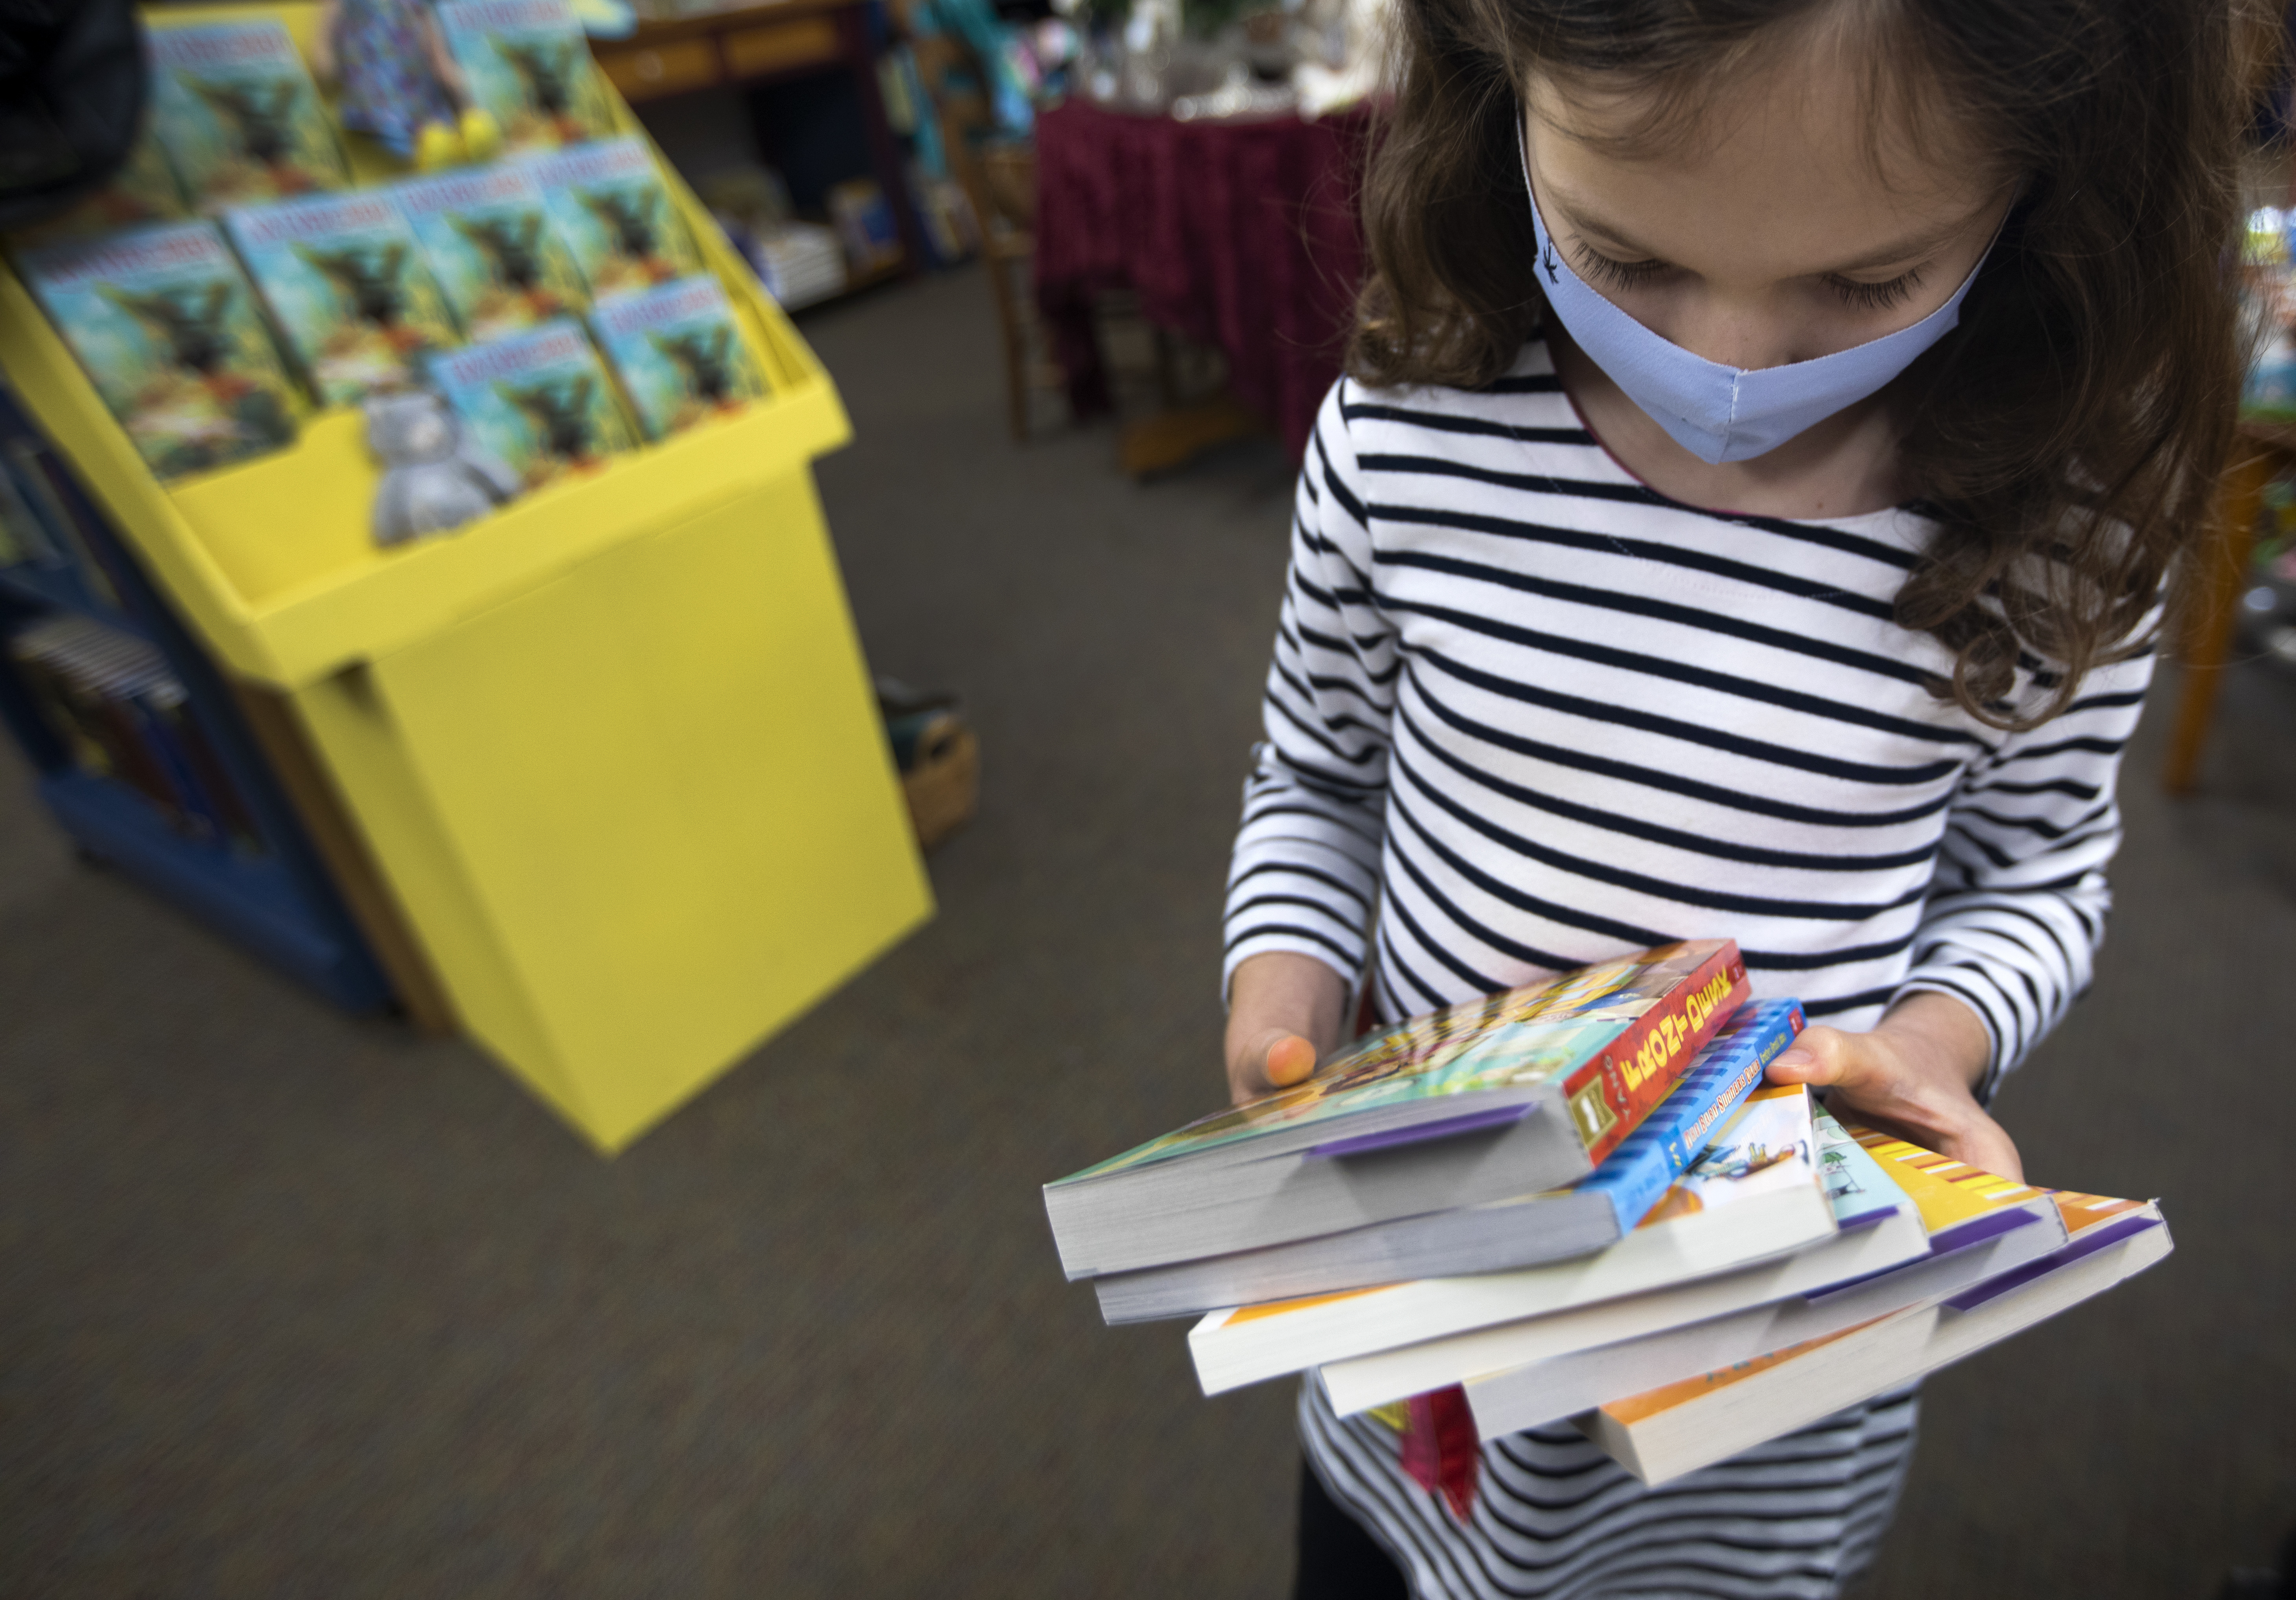 A masked child looks at her armful of books she holds inside the Once Upon a Time bookstore in Montrose.